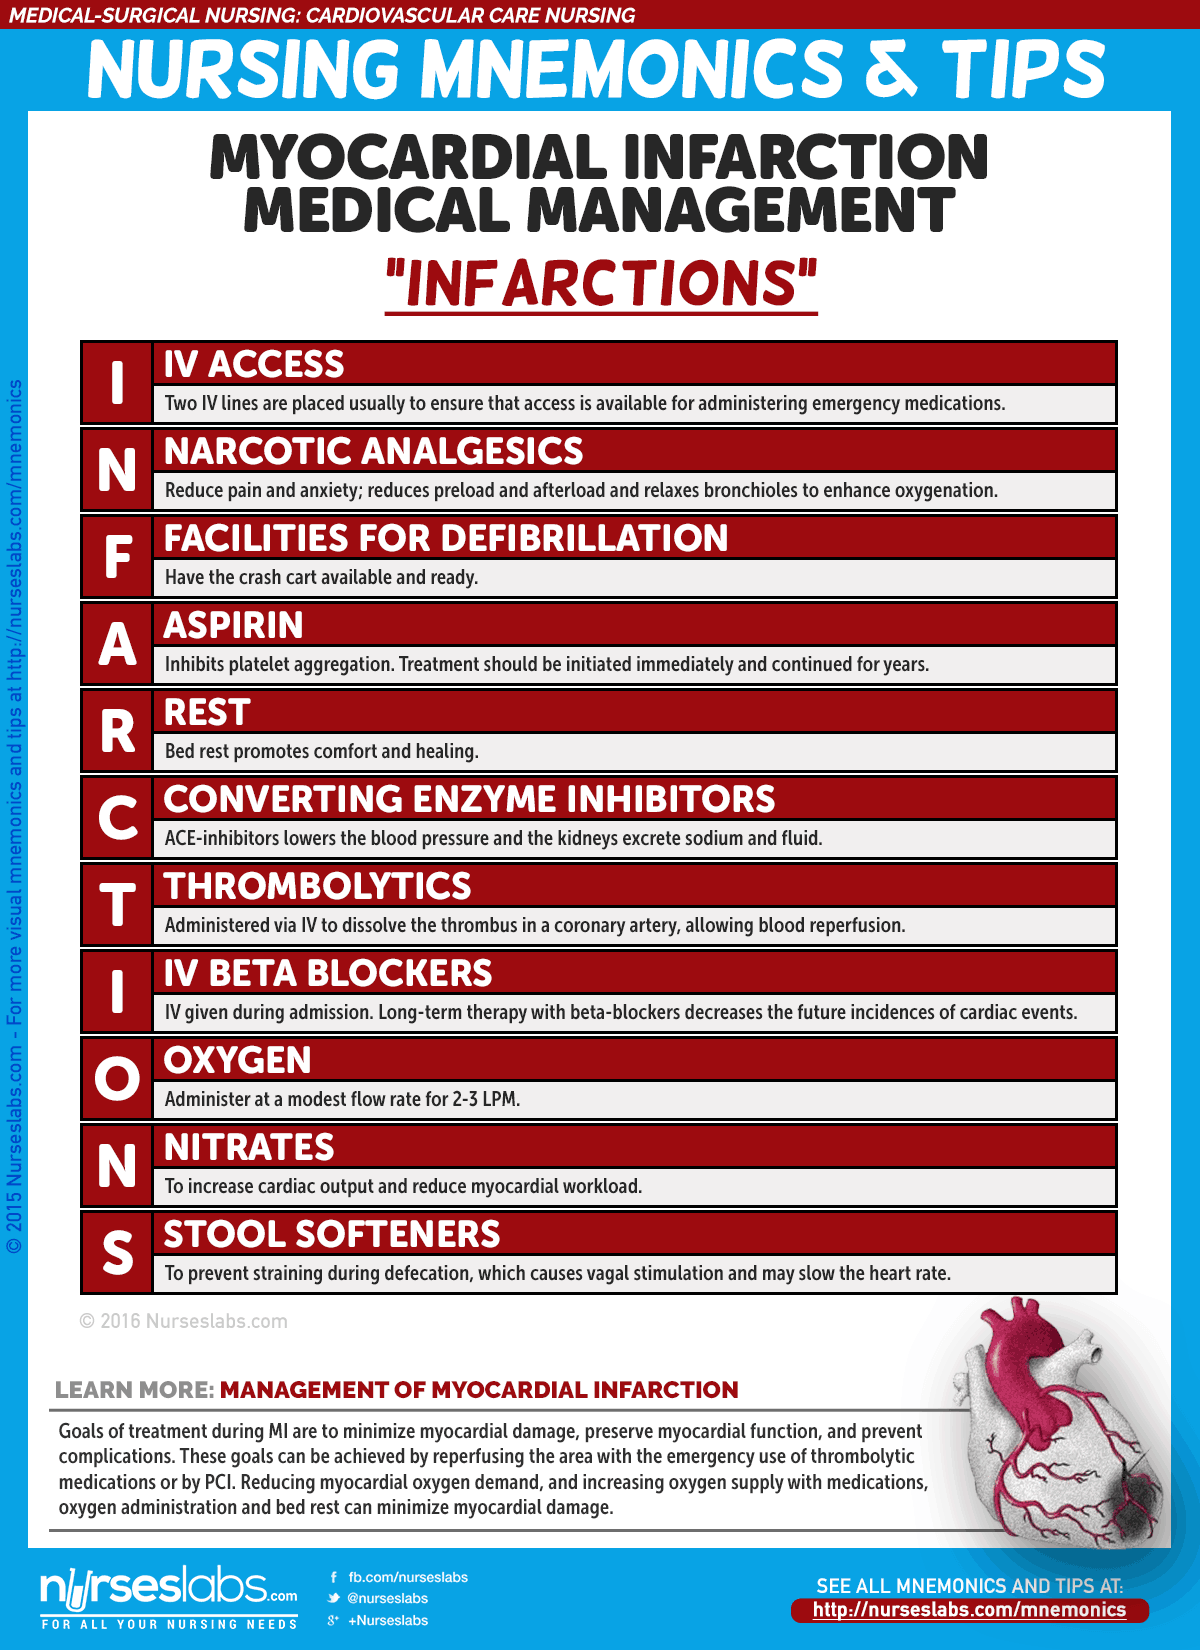 Cardiovascular Care Nursing Mnemonics And Tips